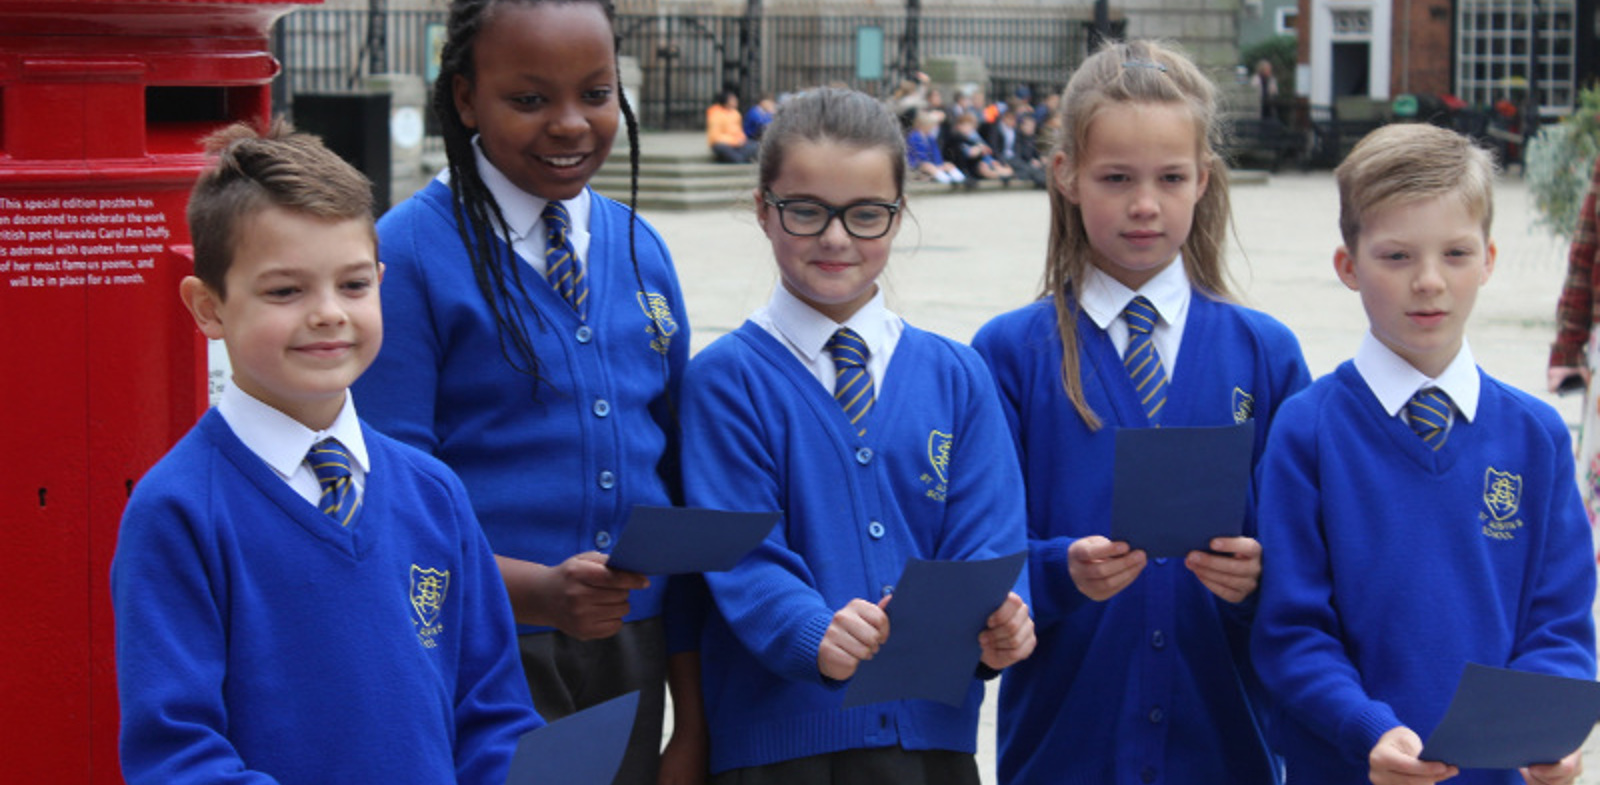 St Austin's children help launch special edition postbox in honour of Poet